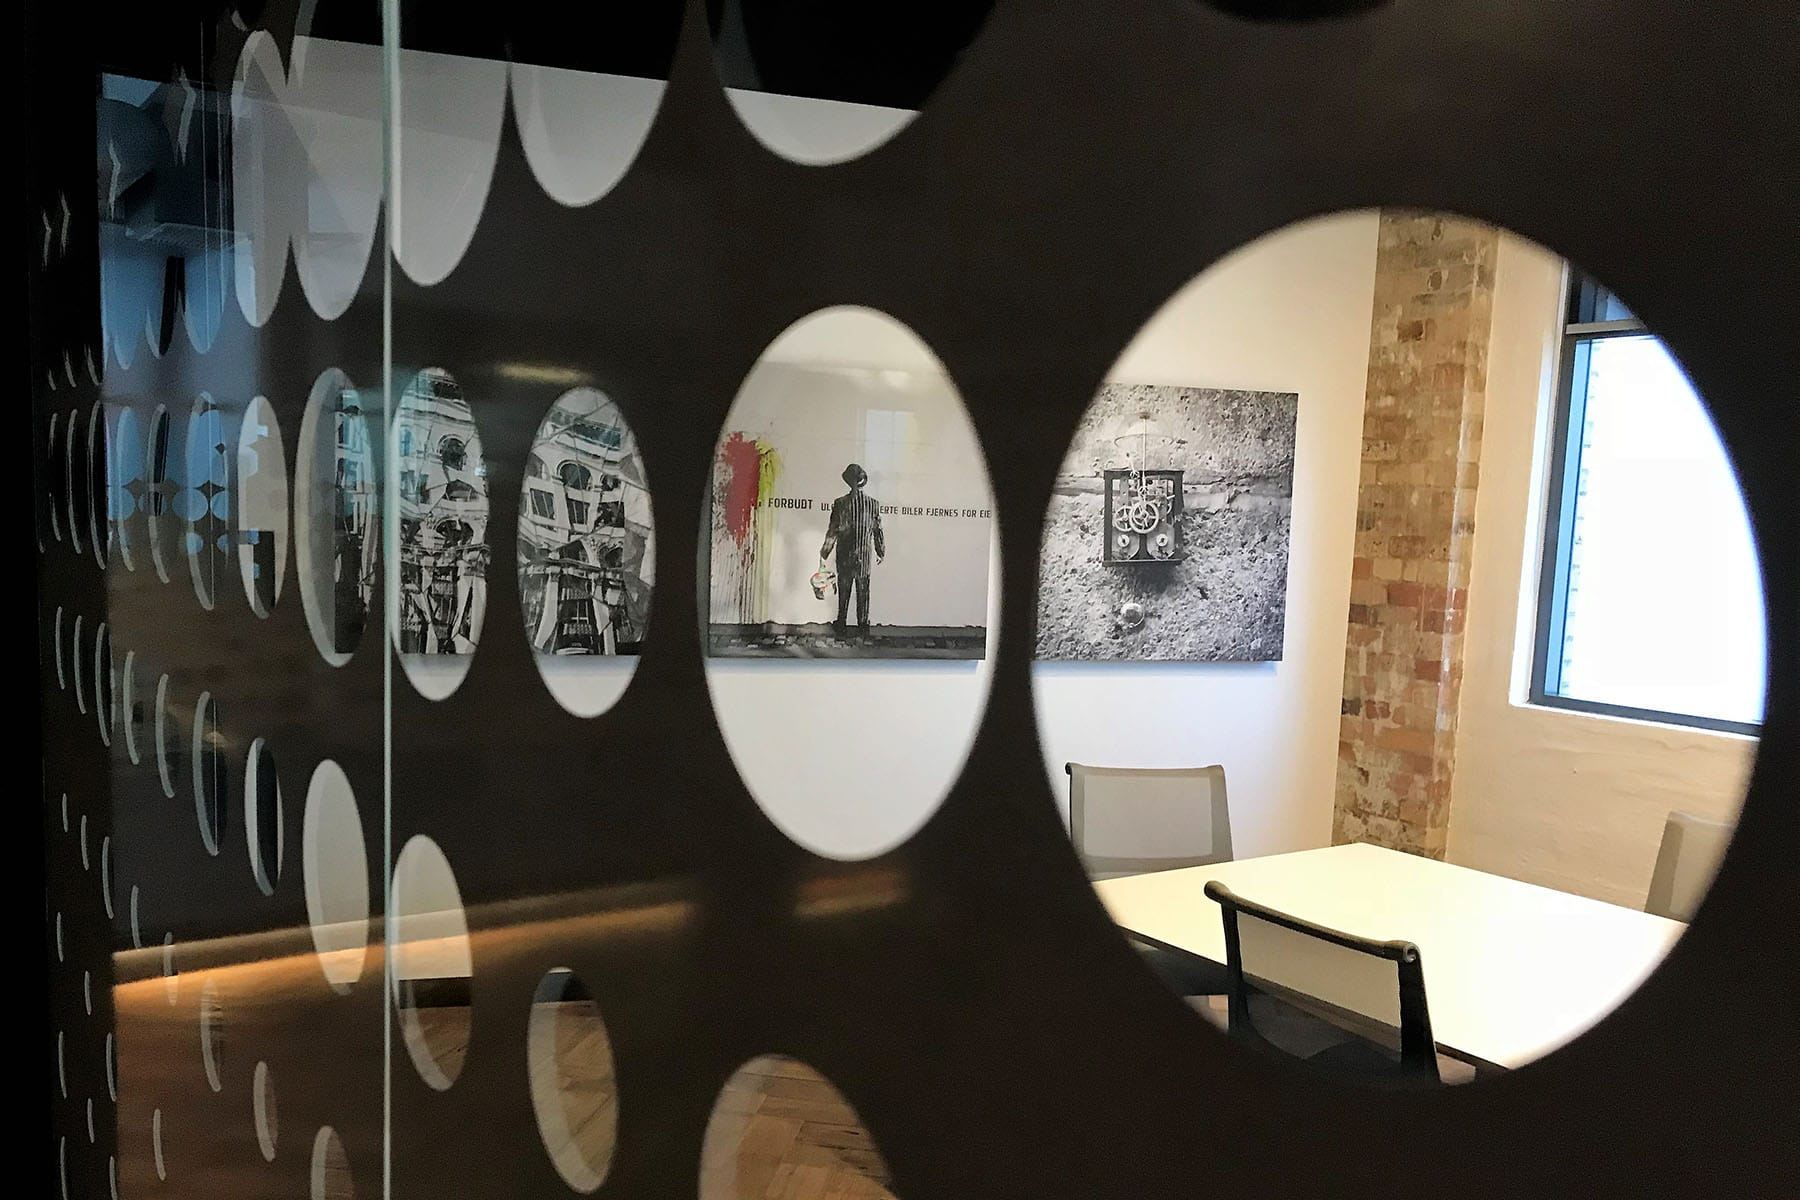 Create It Constructions. Limestore – Commercial Office Fitout. Building Refurbishment. Construction Fitout. Office Fitout. Office Refurbishment. Building Fitout. Longland Street - Newstead. Boardroom. Meeting Room. Glass Decals. Hardwood Floor.